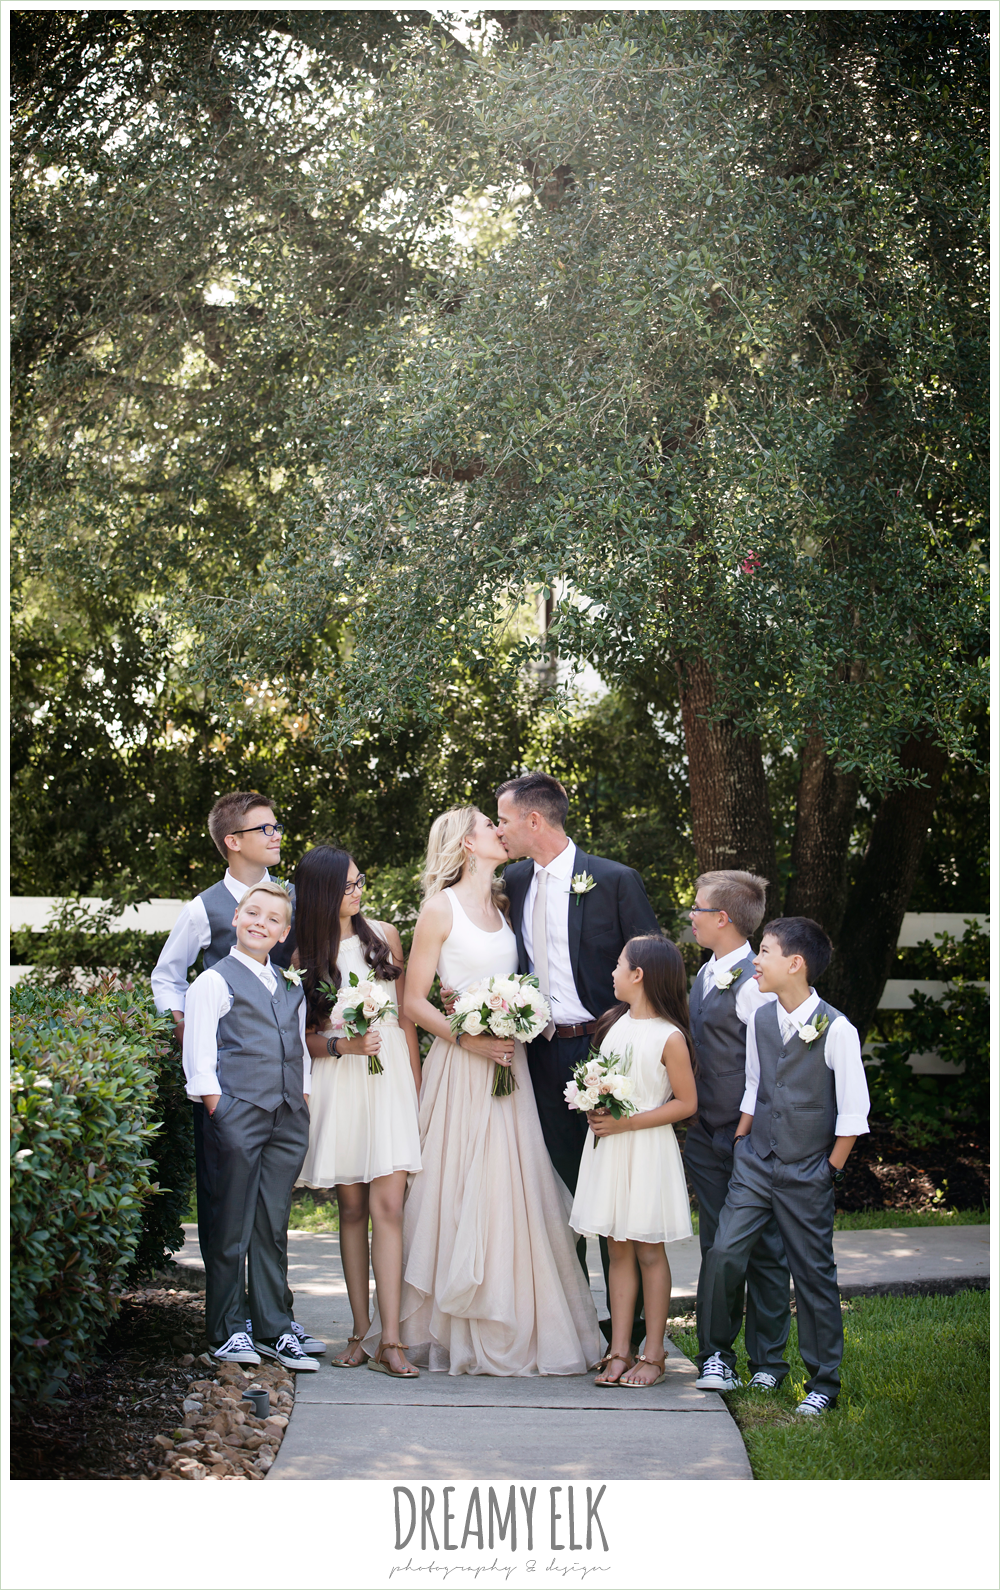 outdoor bride and groom photo, jcrew girls dresses and boys suits, carol hannah kensington halter and blush skirt, july summer morning wedding, ashelynn manor, magnolia, texas {dreamy elk photography and design} photo